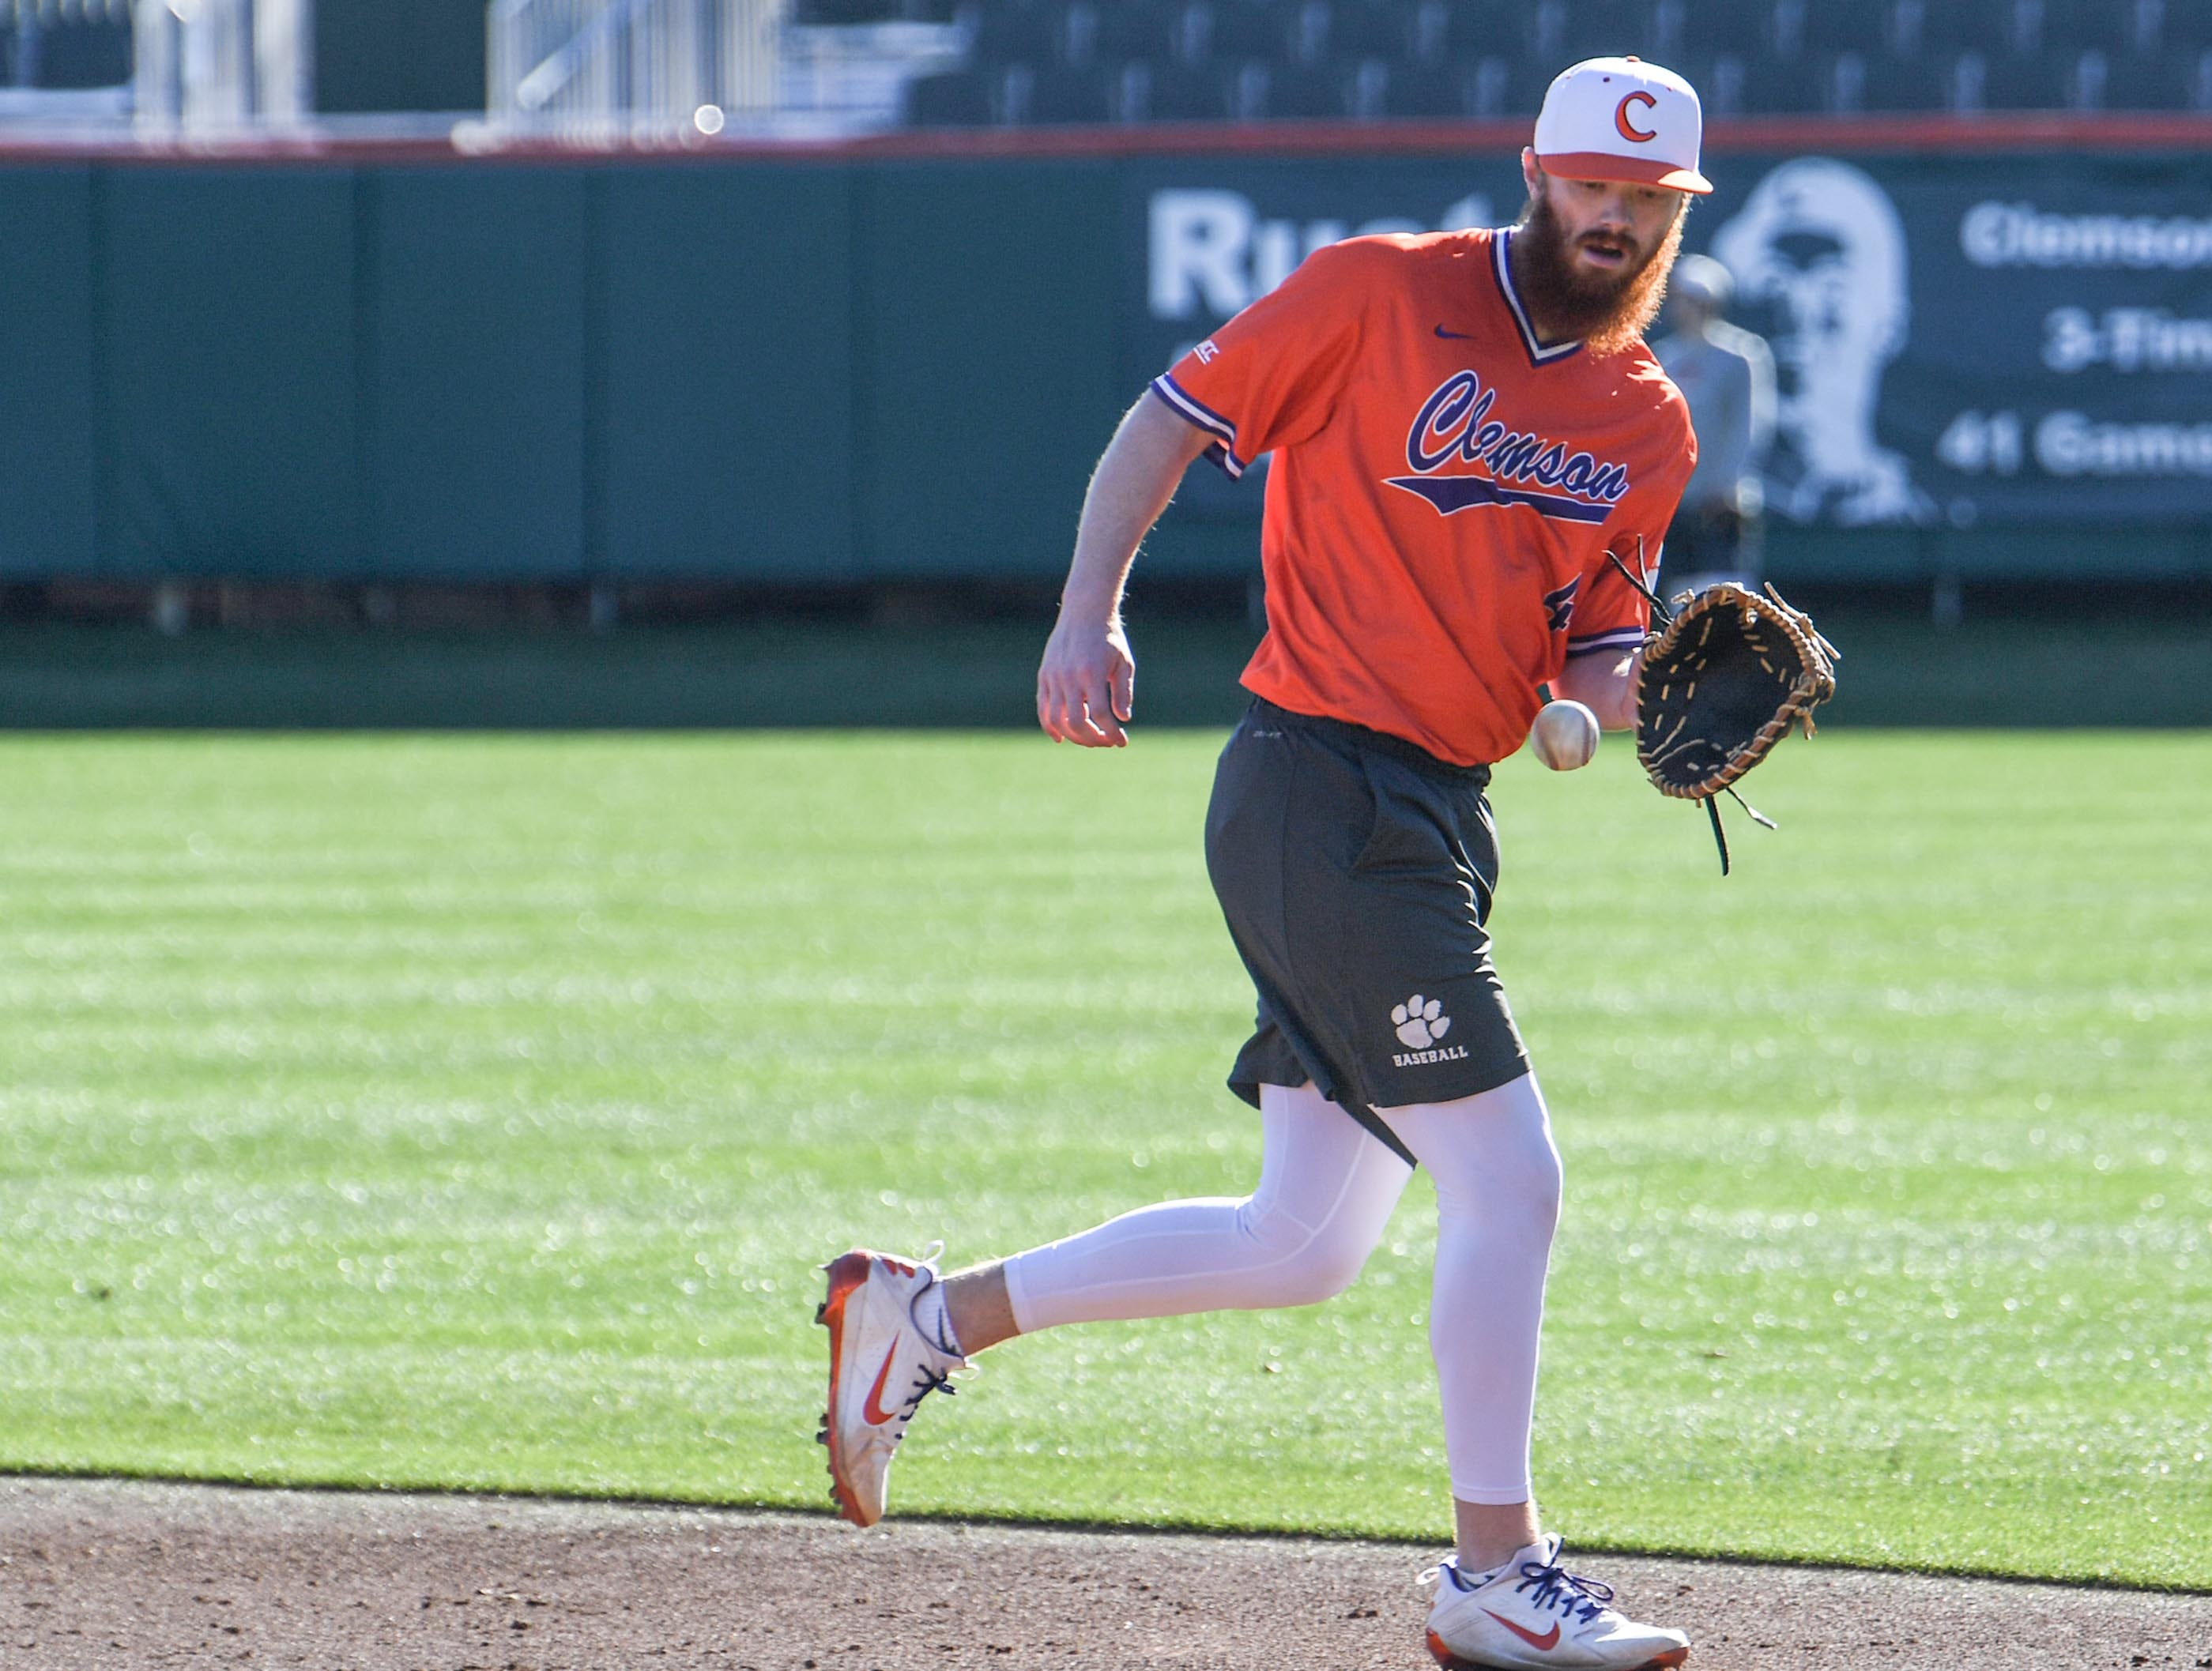 Clemson first baseman Grayson Byrd fields a ball to first base during practice at Doug Kingsmore Stadium in Clemson Friday.